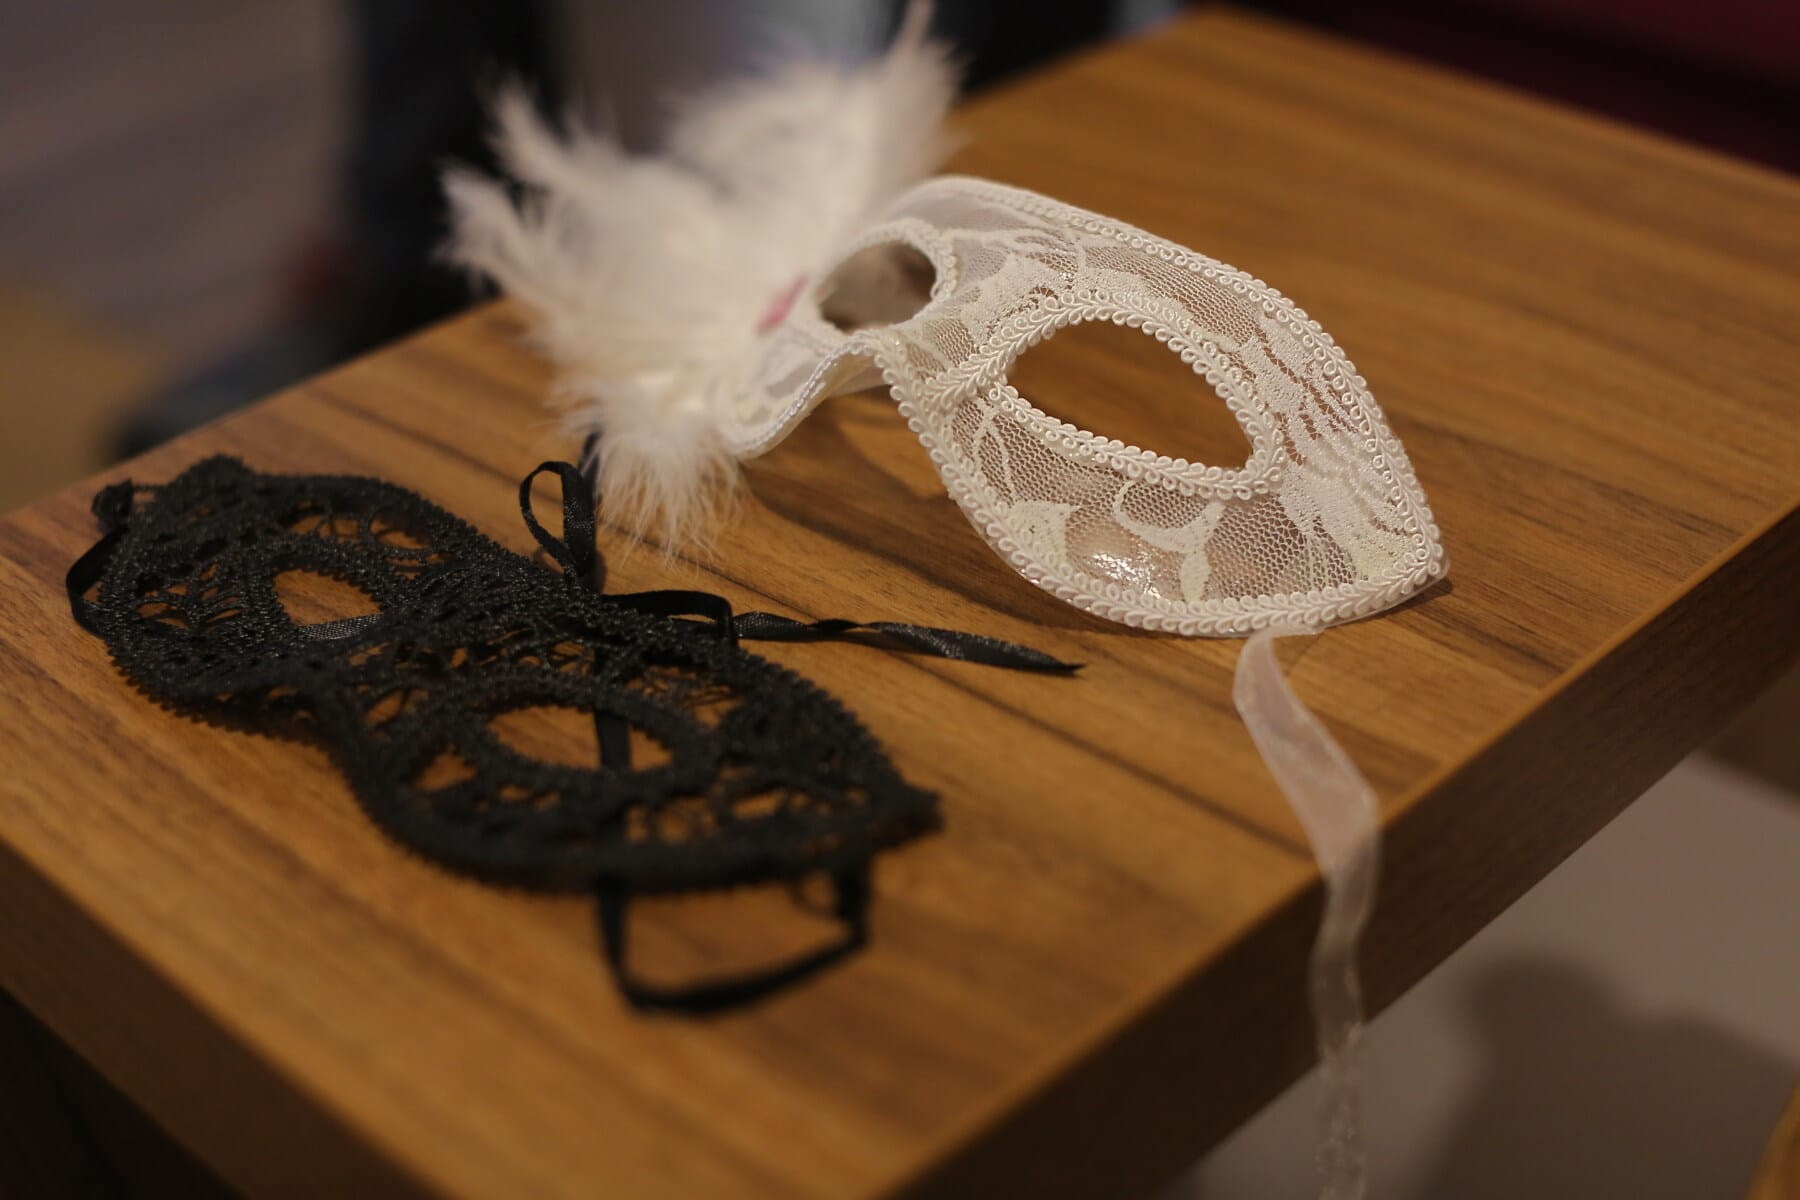 face mask, mask, baroque, handmade, vintage, carnival, black and white, styling, fashion, festival